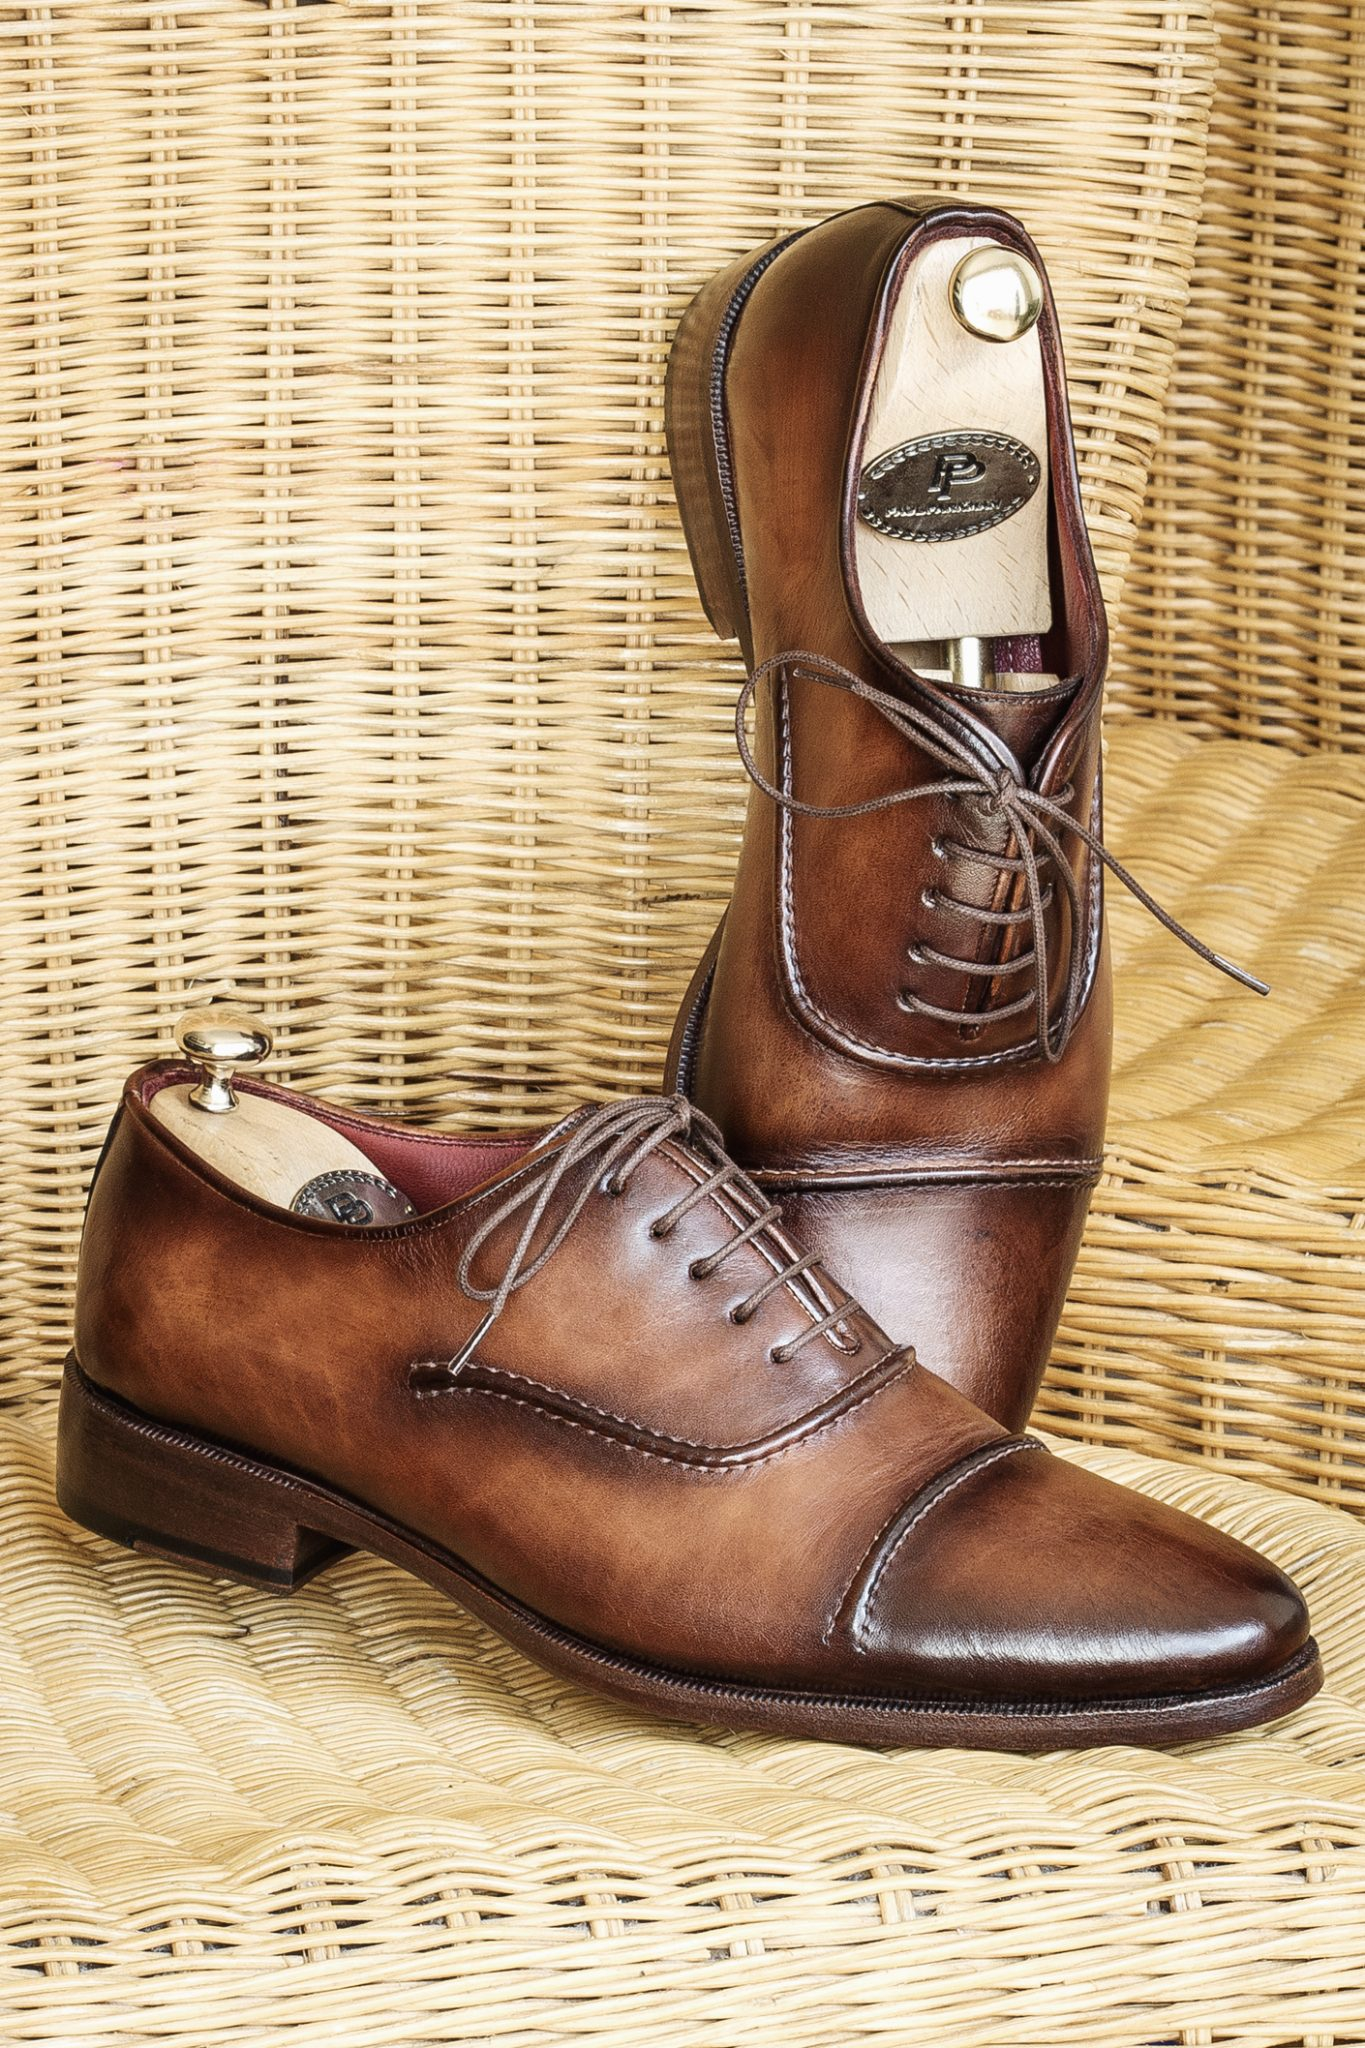 mens-shoes-fashion-and-product-photography-in-manchester